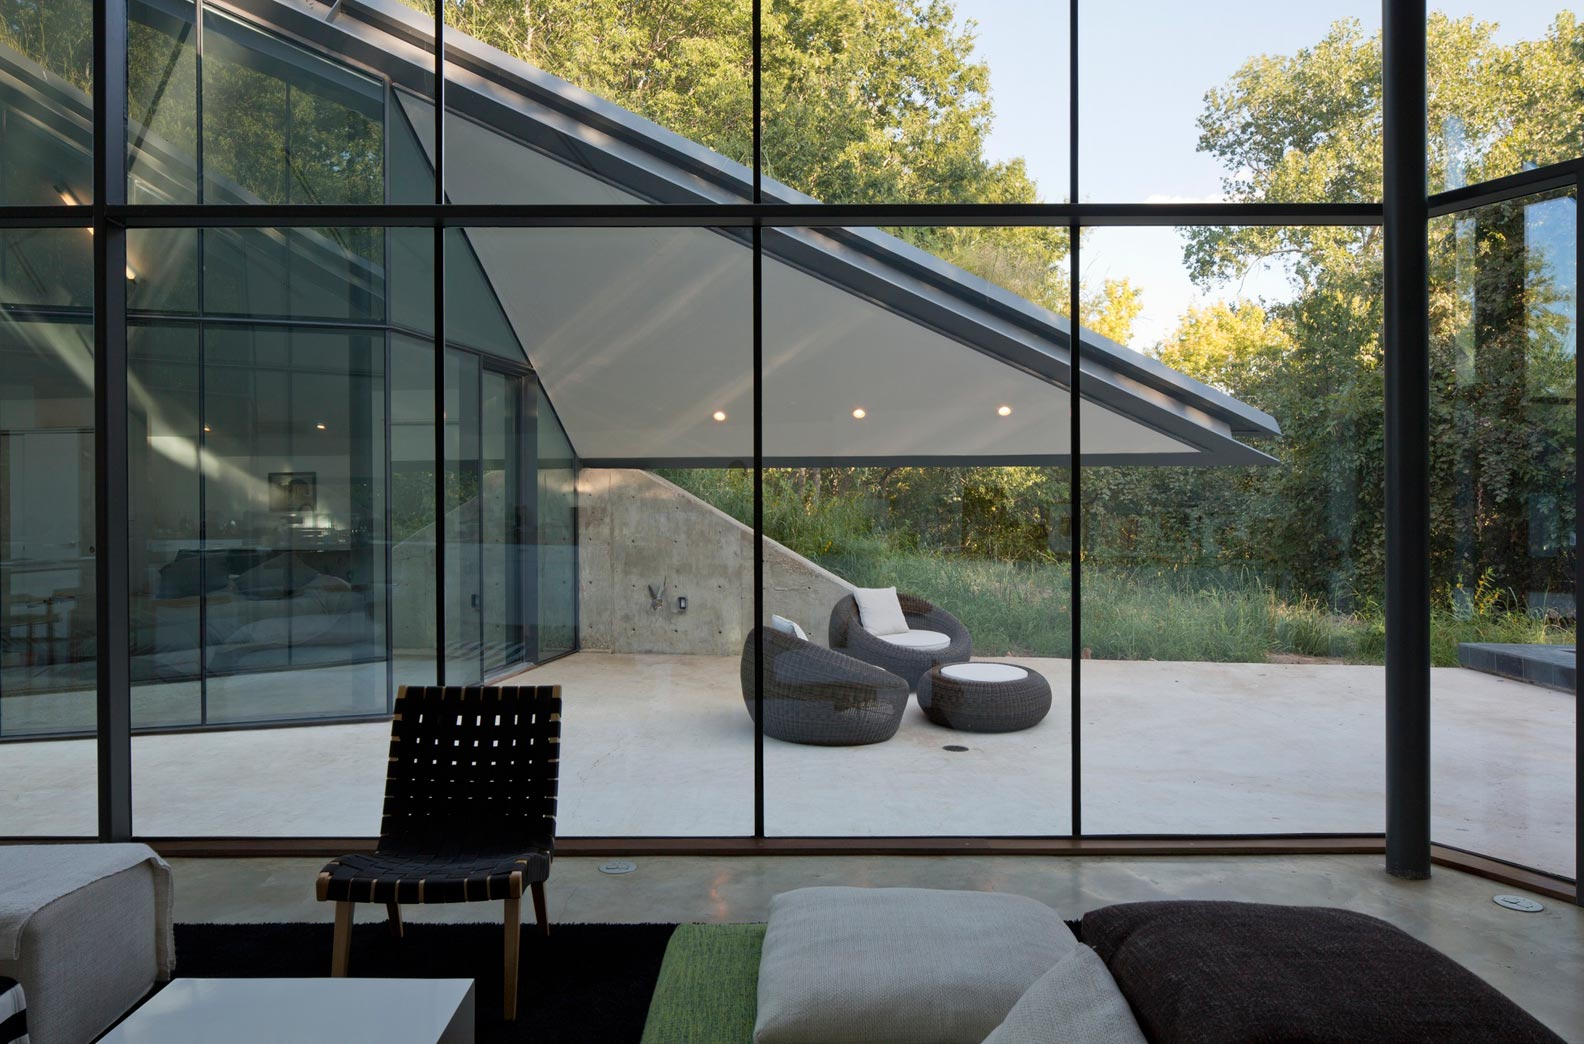 Paneled Glass Walls Of Pit House Outdoor Interior Design